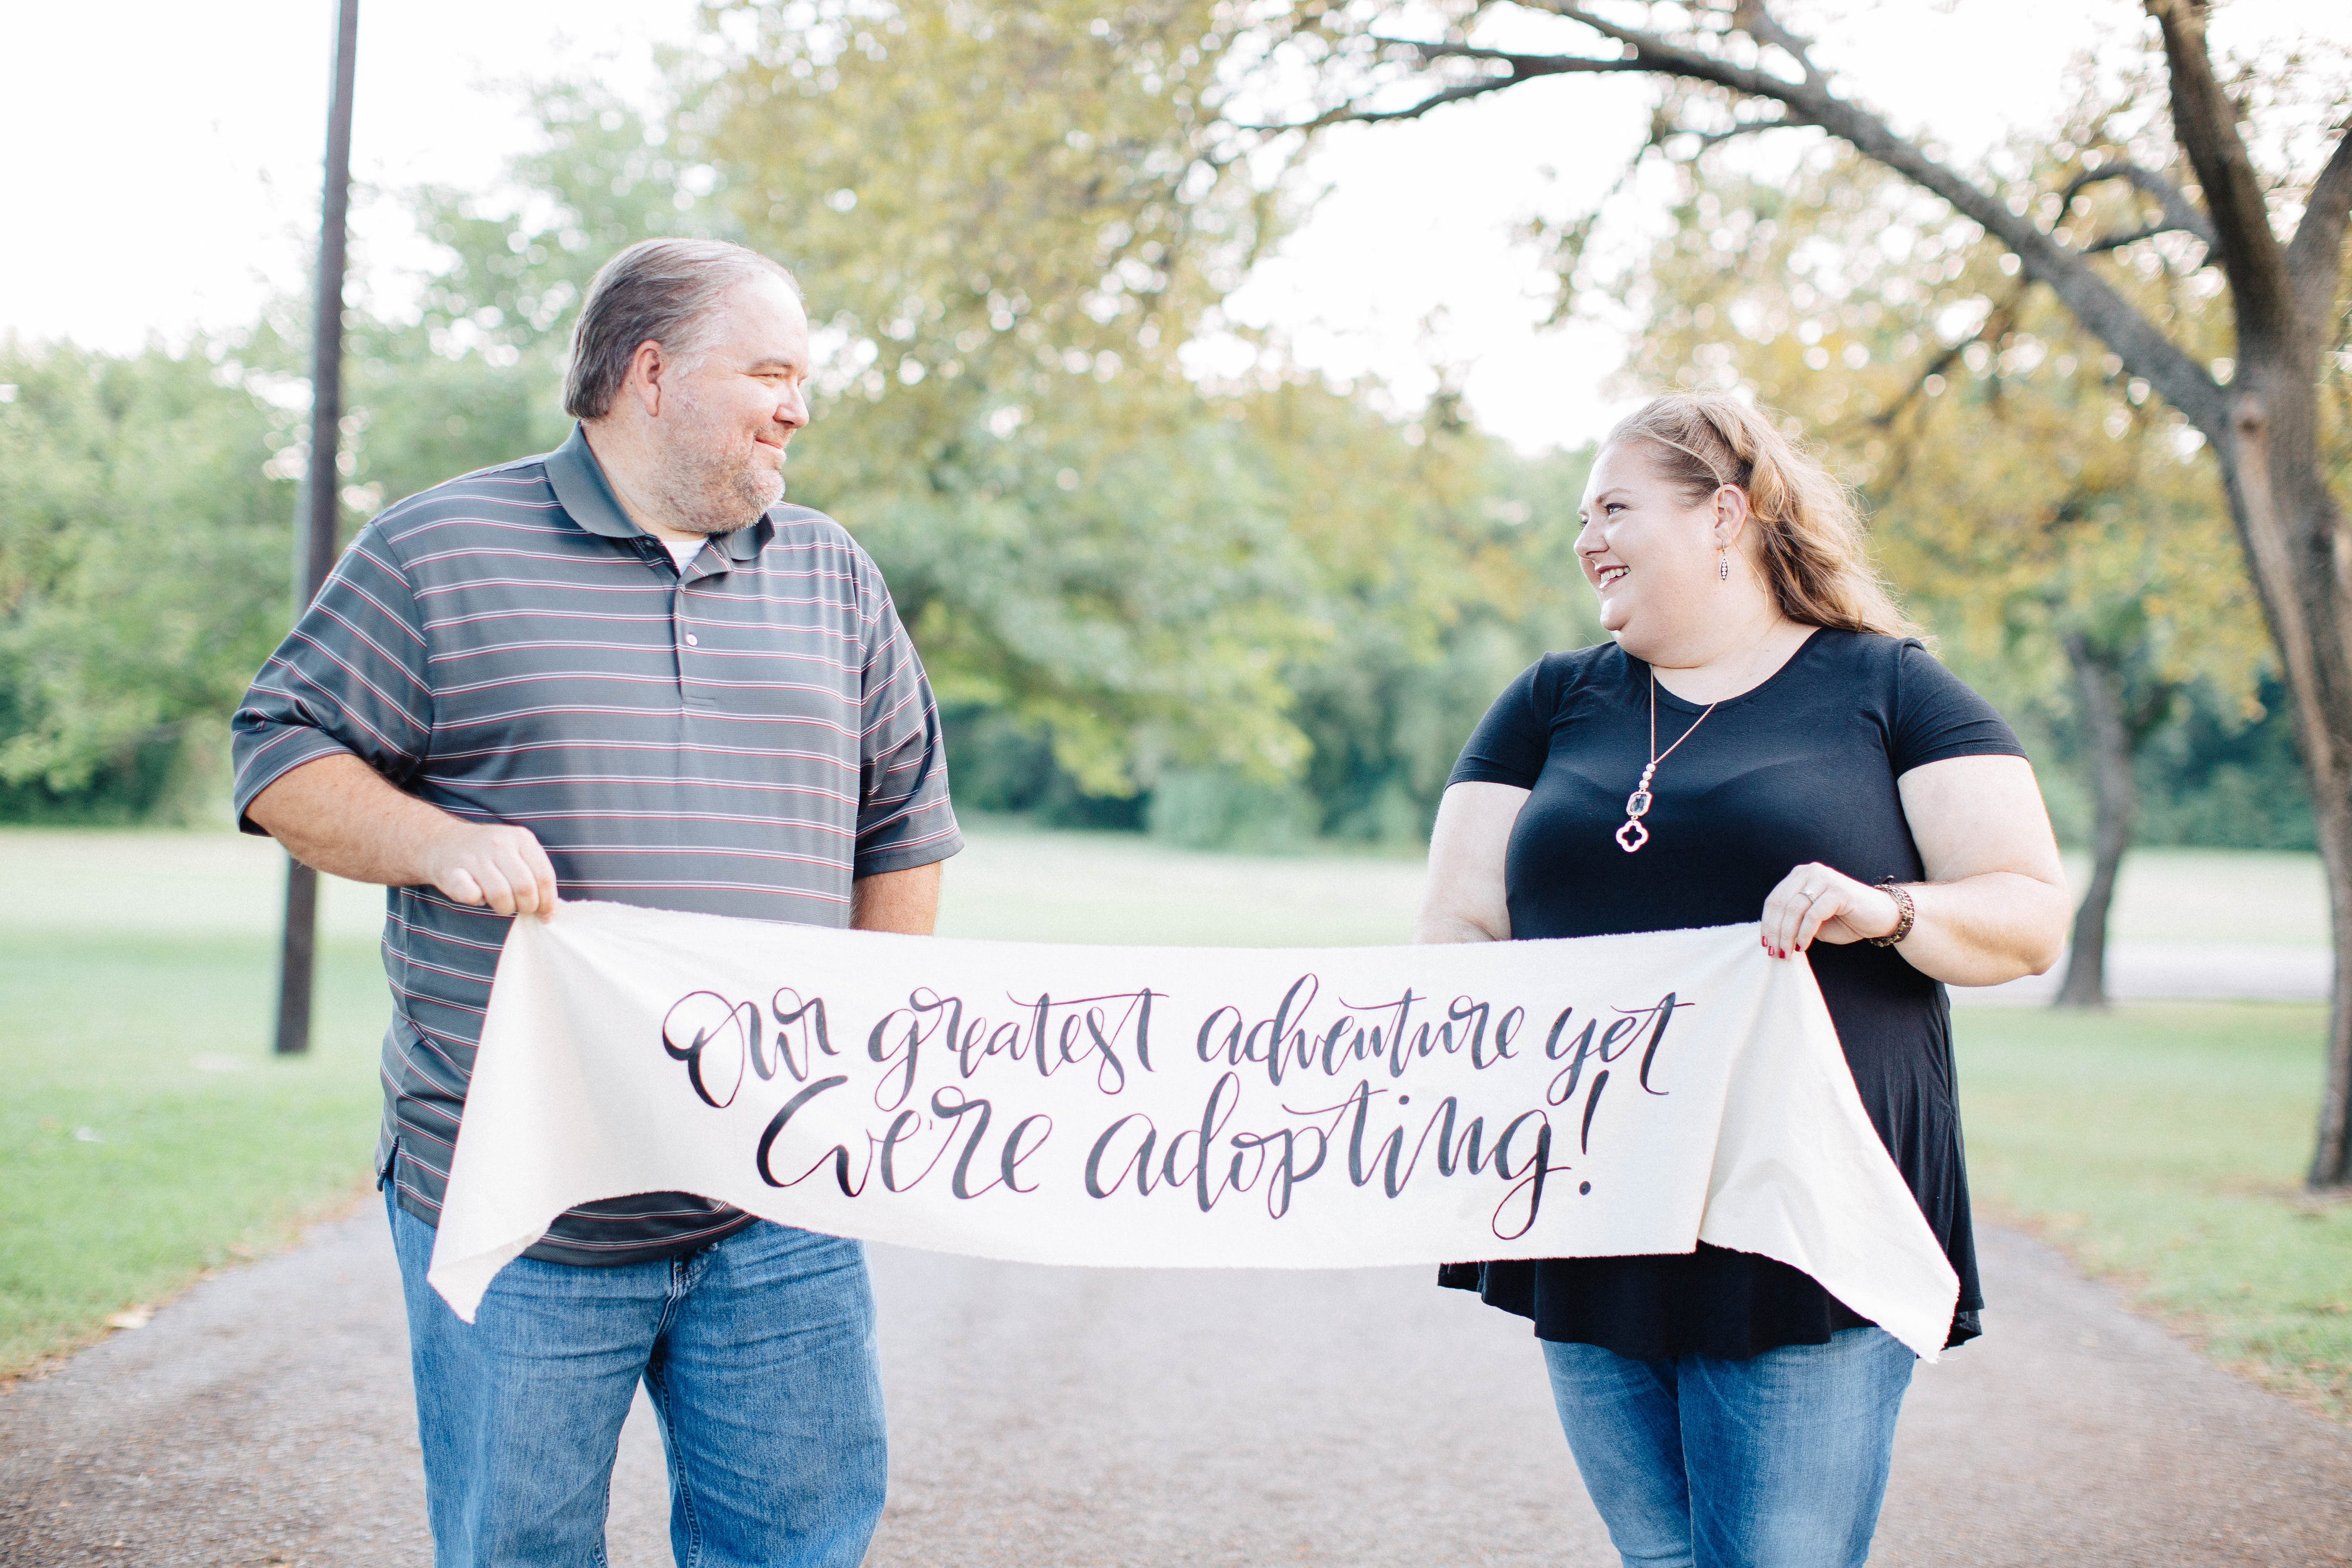 Goodman Family Adoption is raising money on AdoptTogether for their adoption from United States.